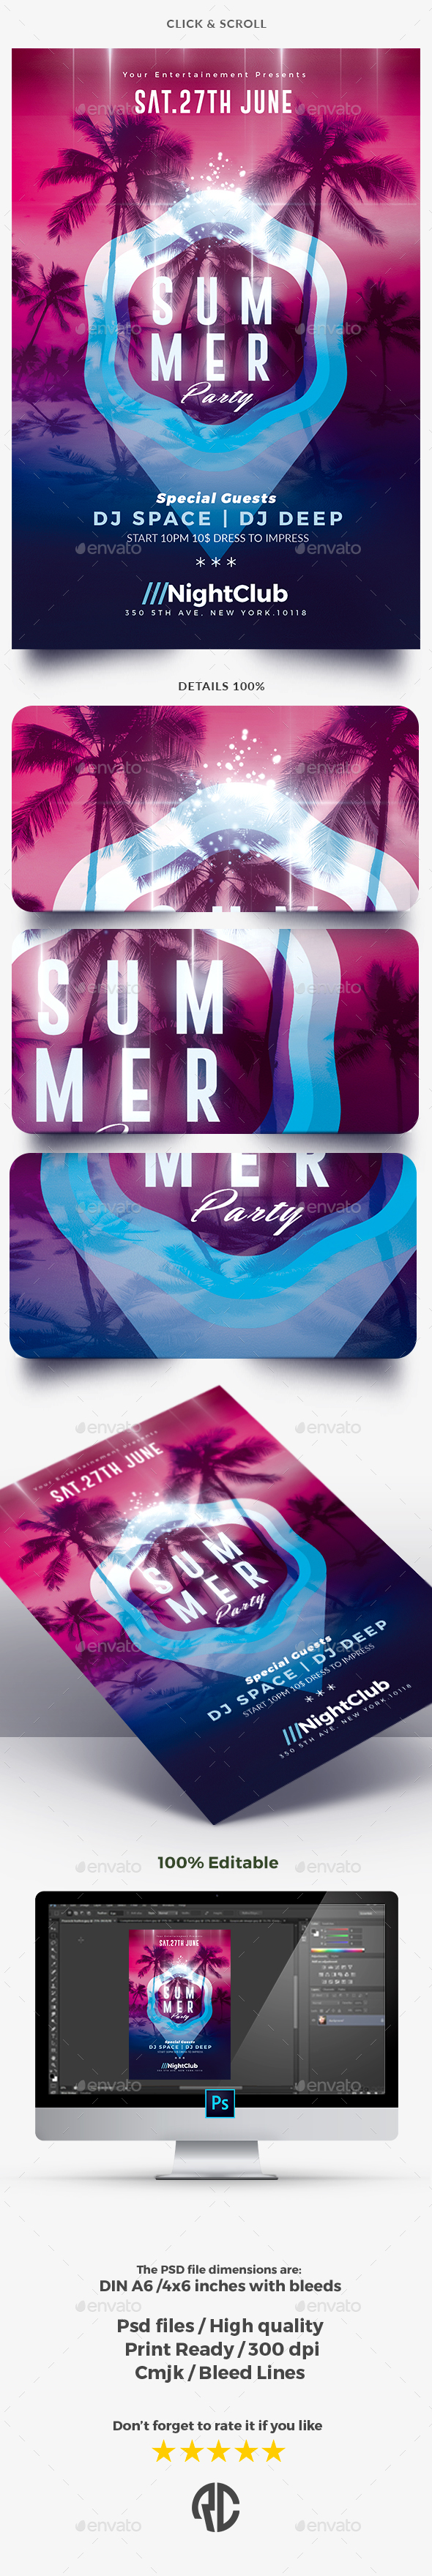 Summer Party - Flyer Template - Clubs & Parties Events